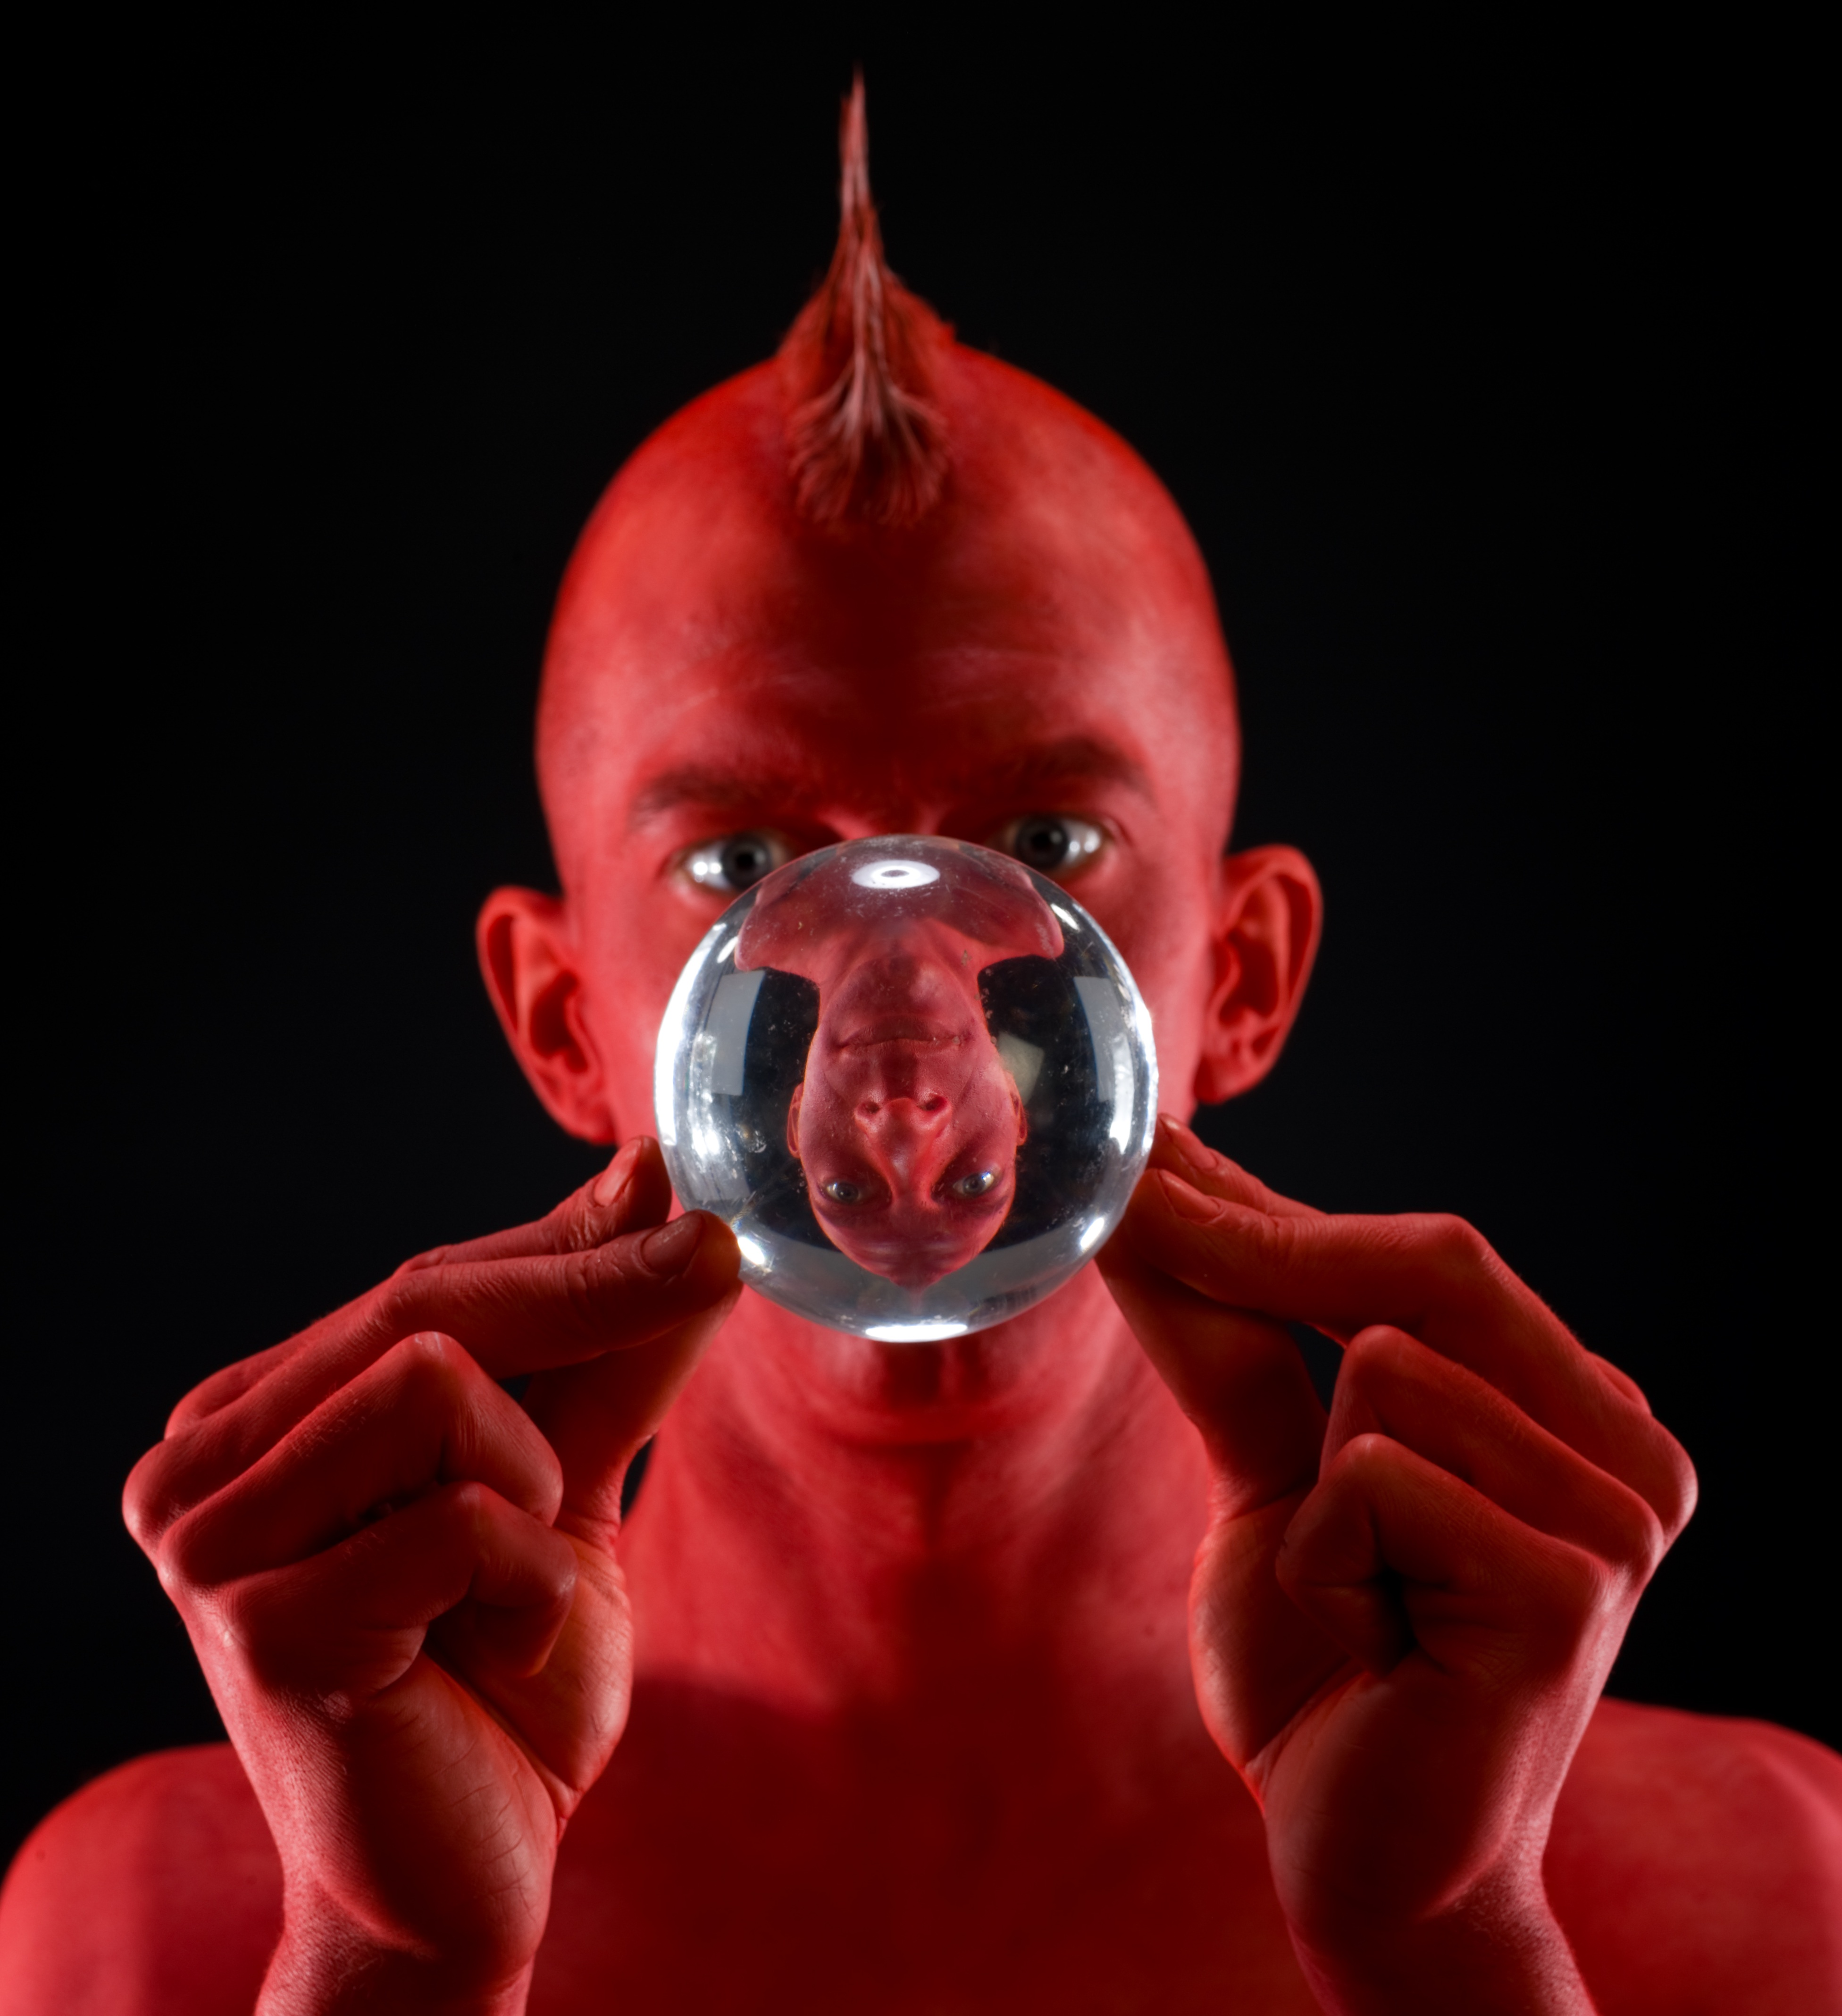 hewhoisred-through-the-looking-glass-by-utopian-photography.jpg